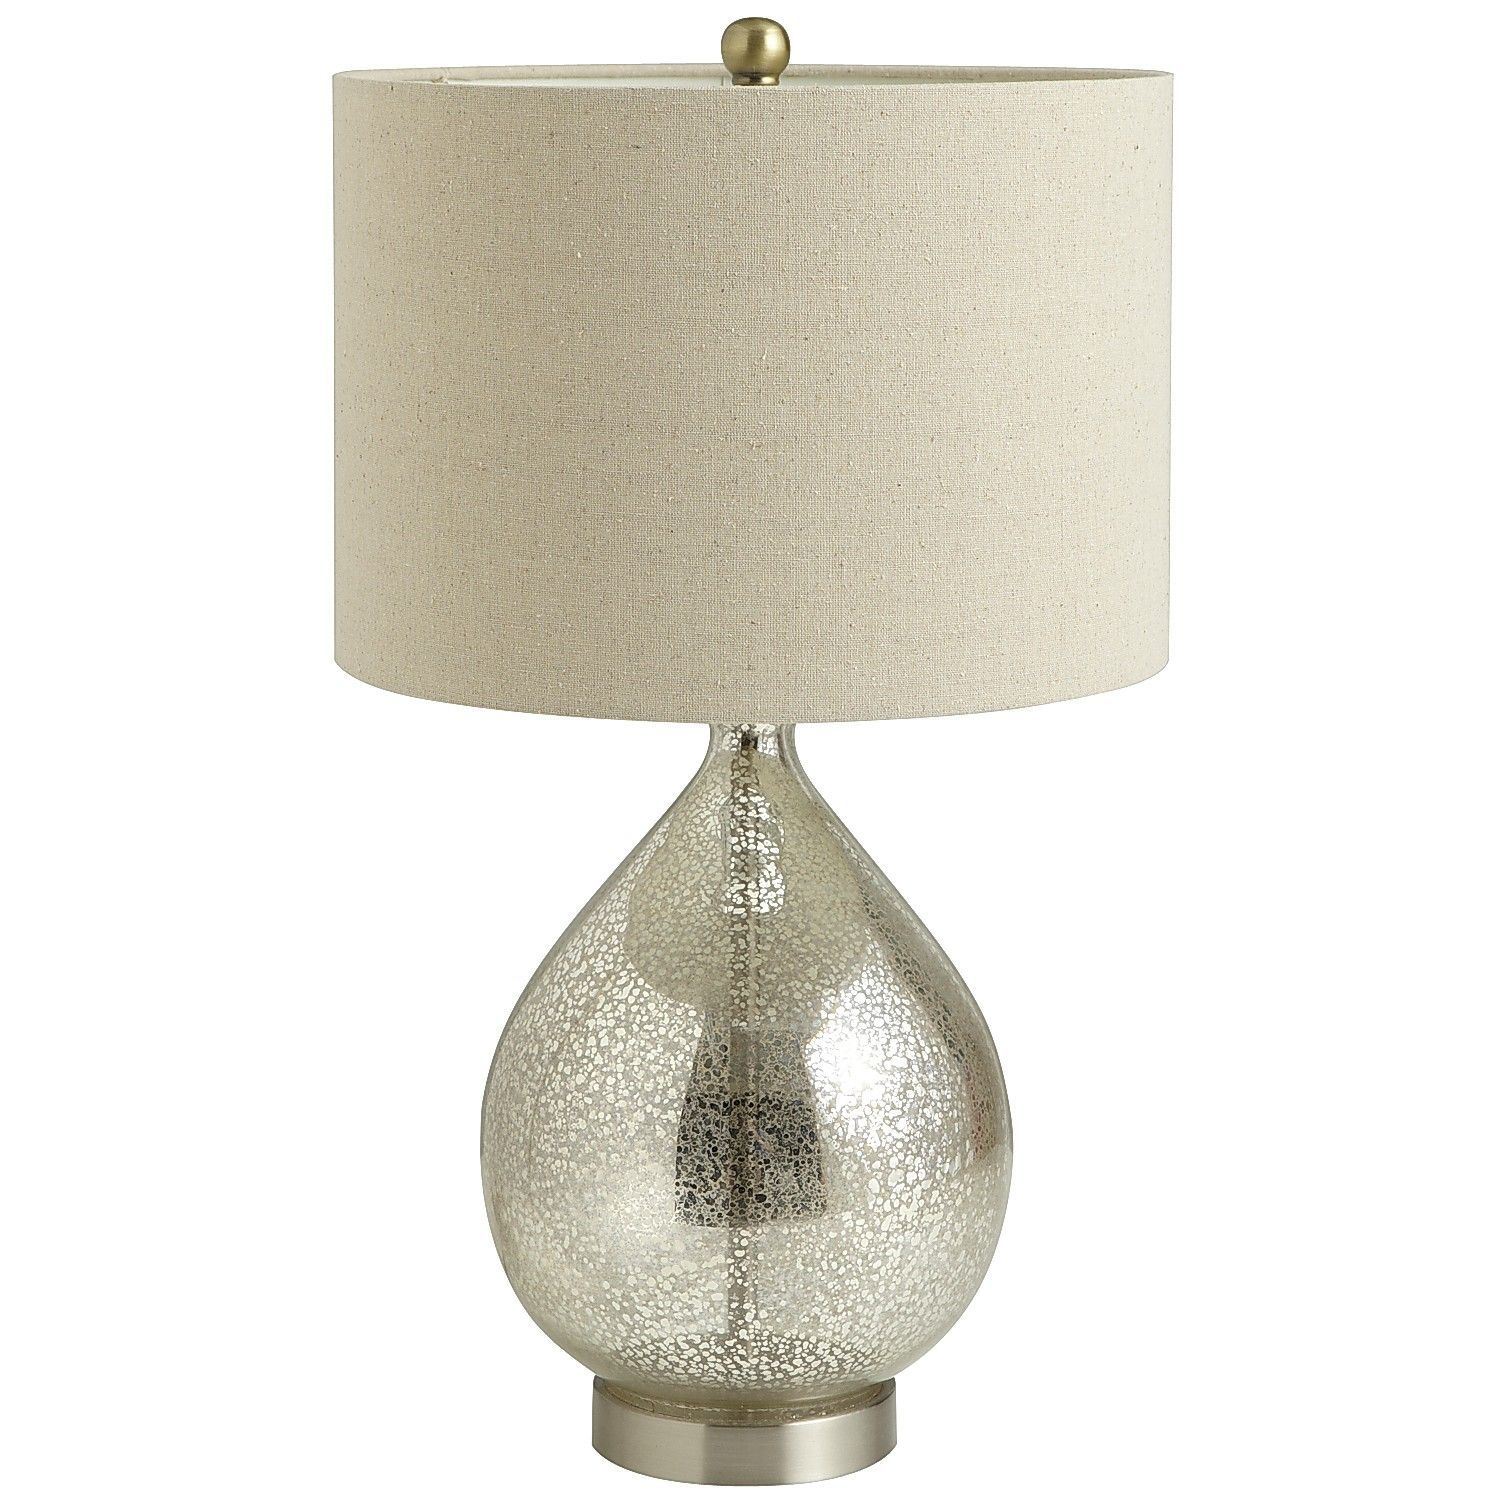 Teardrop Luxe Lamp Mercury Glass Table Lamp Silver Table Lamps Table Lamps For Bedroom #silver #lamps #for #living #room